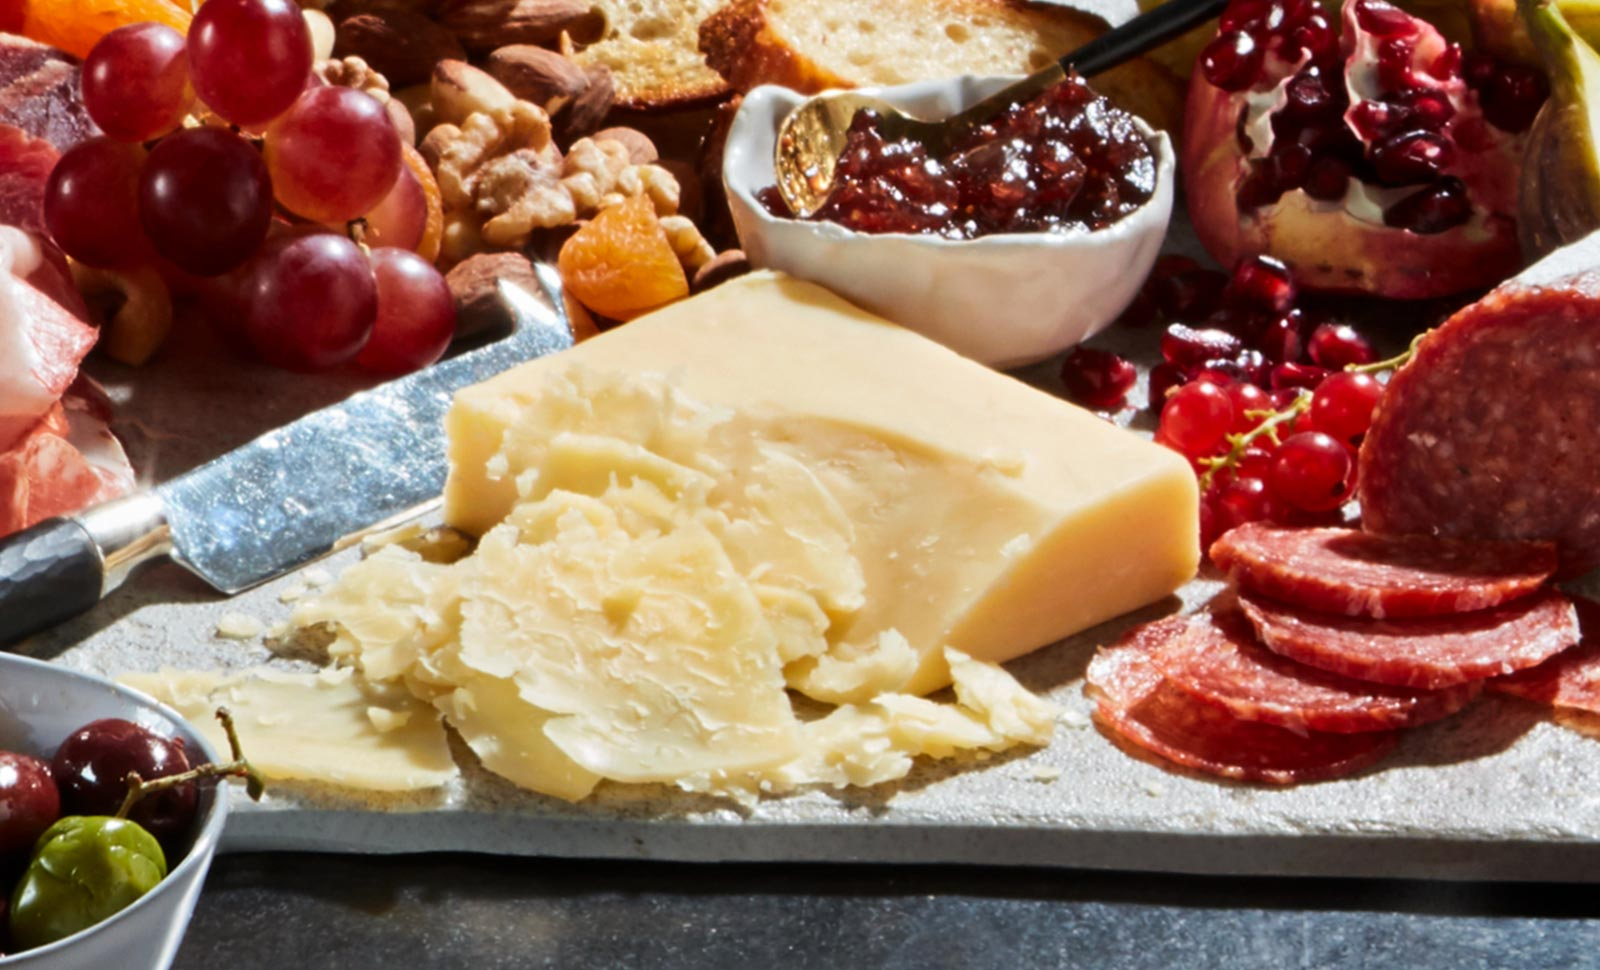 5 year aged cheddar with an assortment of fruits, nuts and sliced meats.